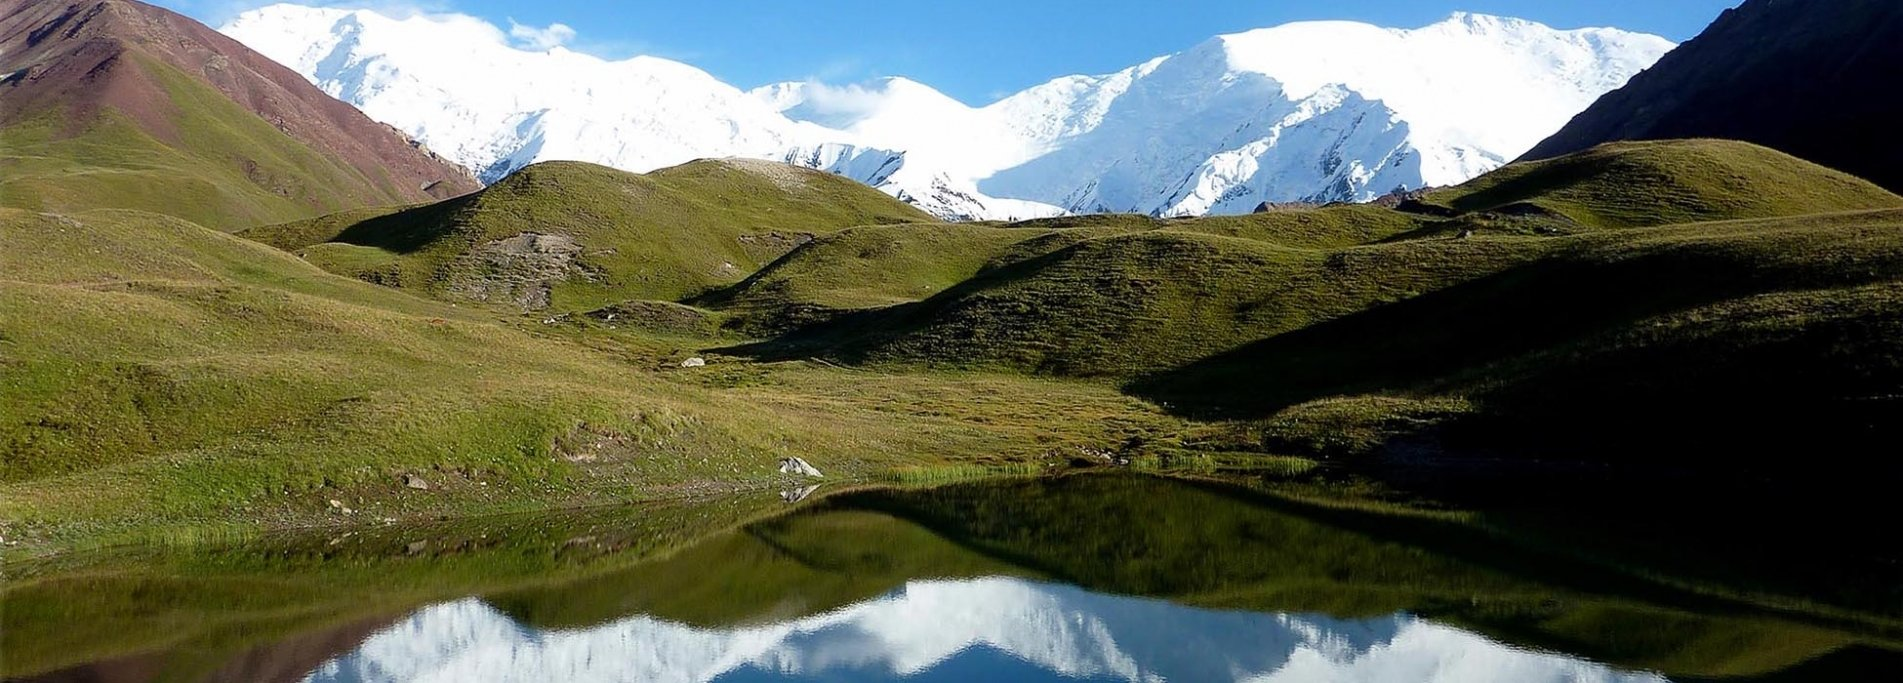 Lenin Peak Base Camp - Trekking in Pamir Mountains